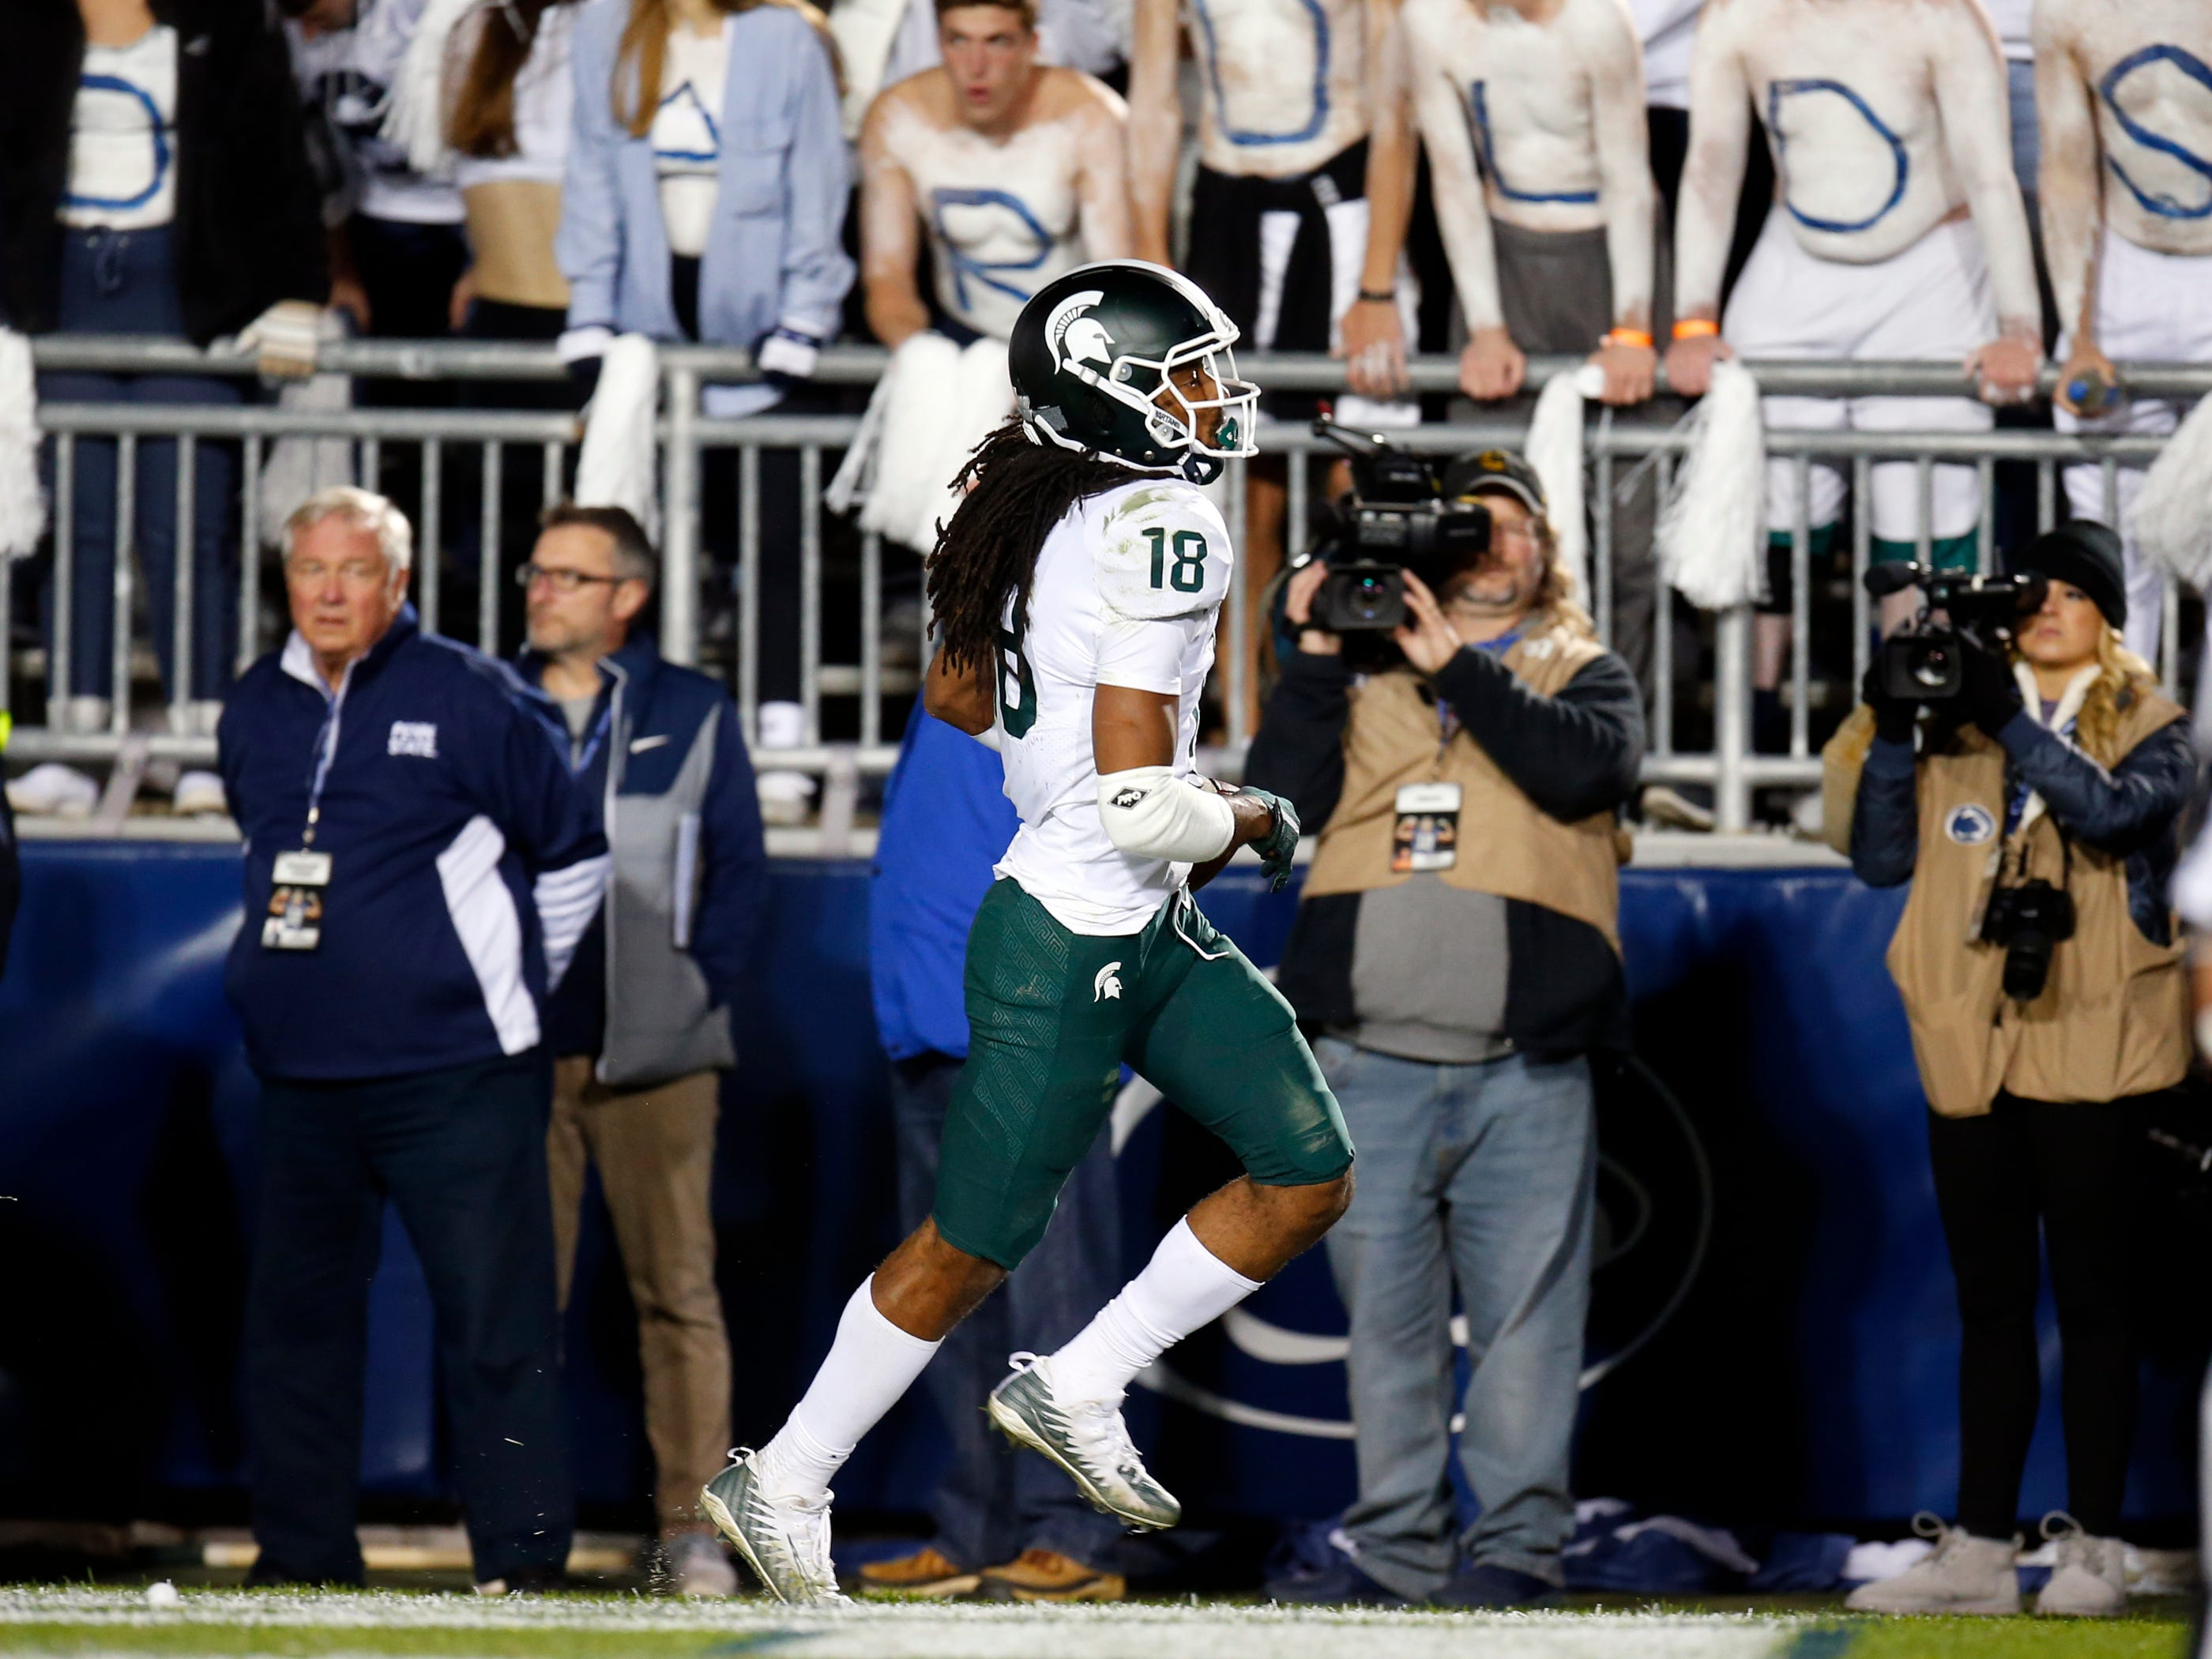 STATE COLLEGE, PA - OCTOBER 13:  Felton Davis III #18 of the Michigan State Spartans celebrates after catching a 25 yard touchdown pass in the fourth quarter against Amani Oruwariye #21 of the Penn State Nittany Lions on October 13, 2018 at Beaver Stadium in State College, Pennsylvania.  (Photo by Justin K. Aller/Getty Images)